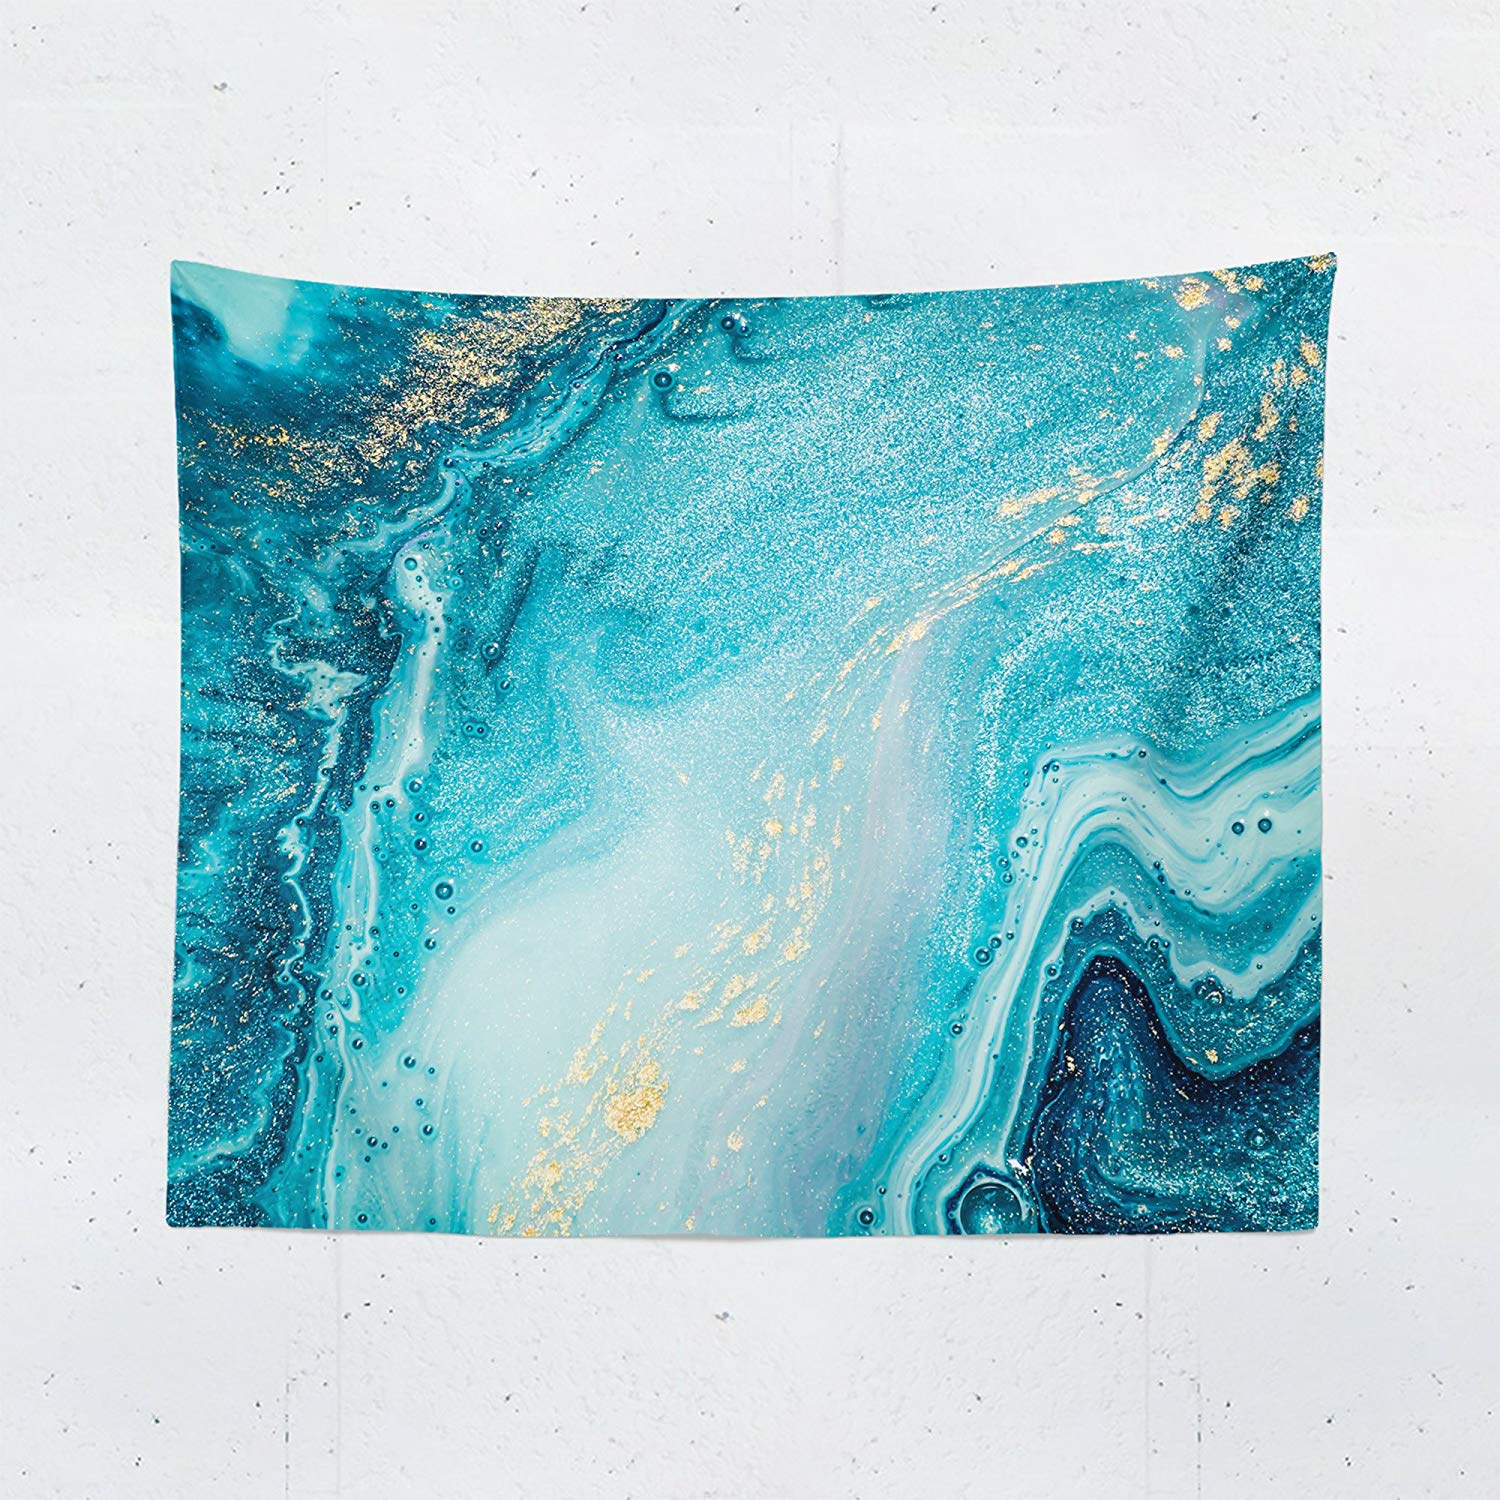 Blue Gold Marble Wall Tapestry - Abstract Stone Modern Contemporary Tapestries Hanging Décor Bedroom Dorm College Living Room Home Art Print Decoration - Printed in the USA - Small Medium Large